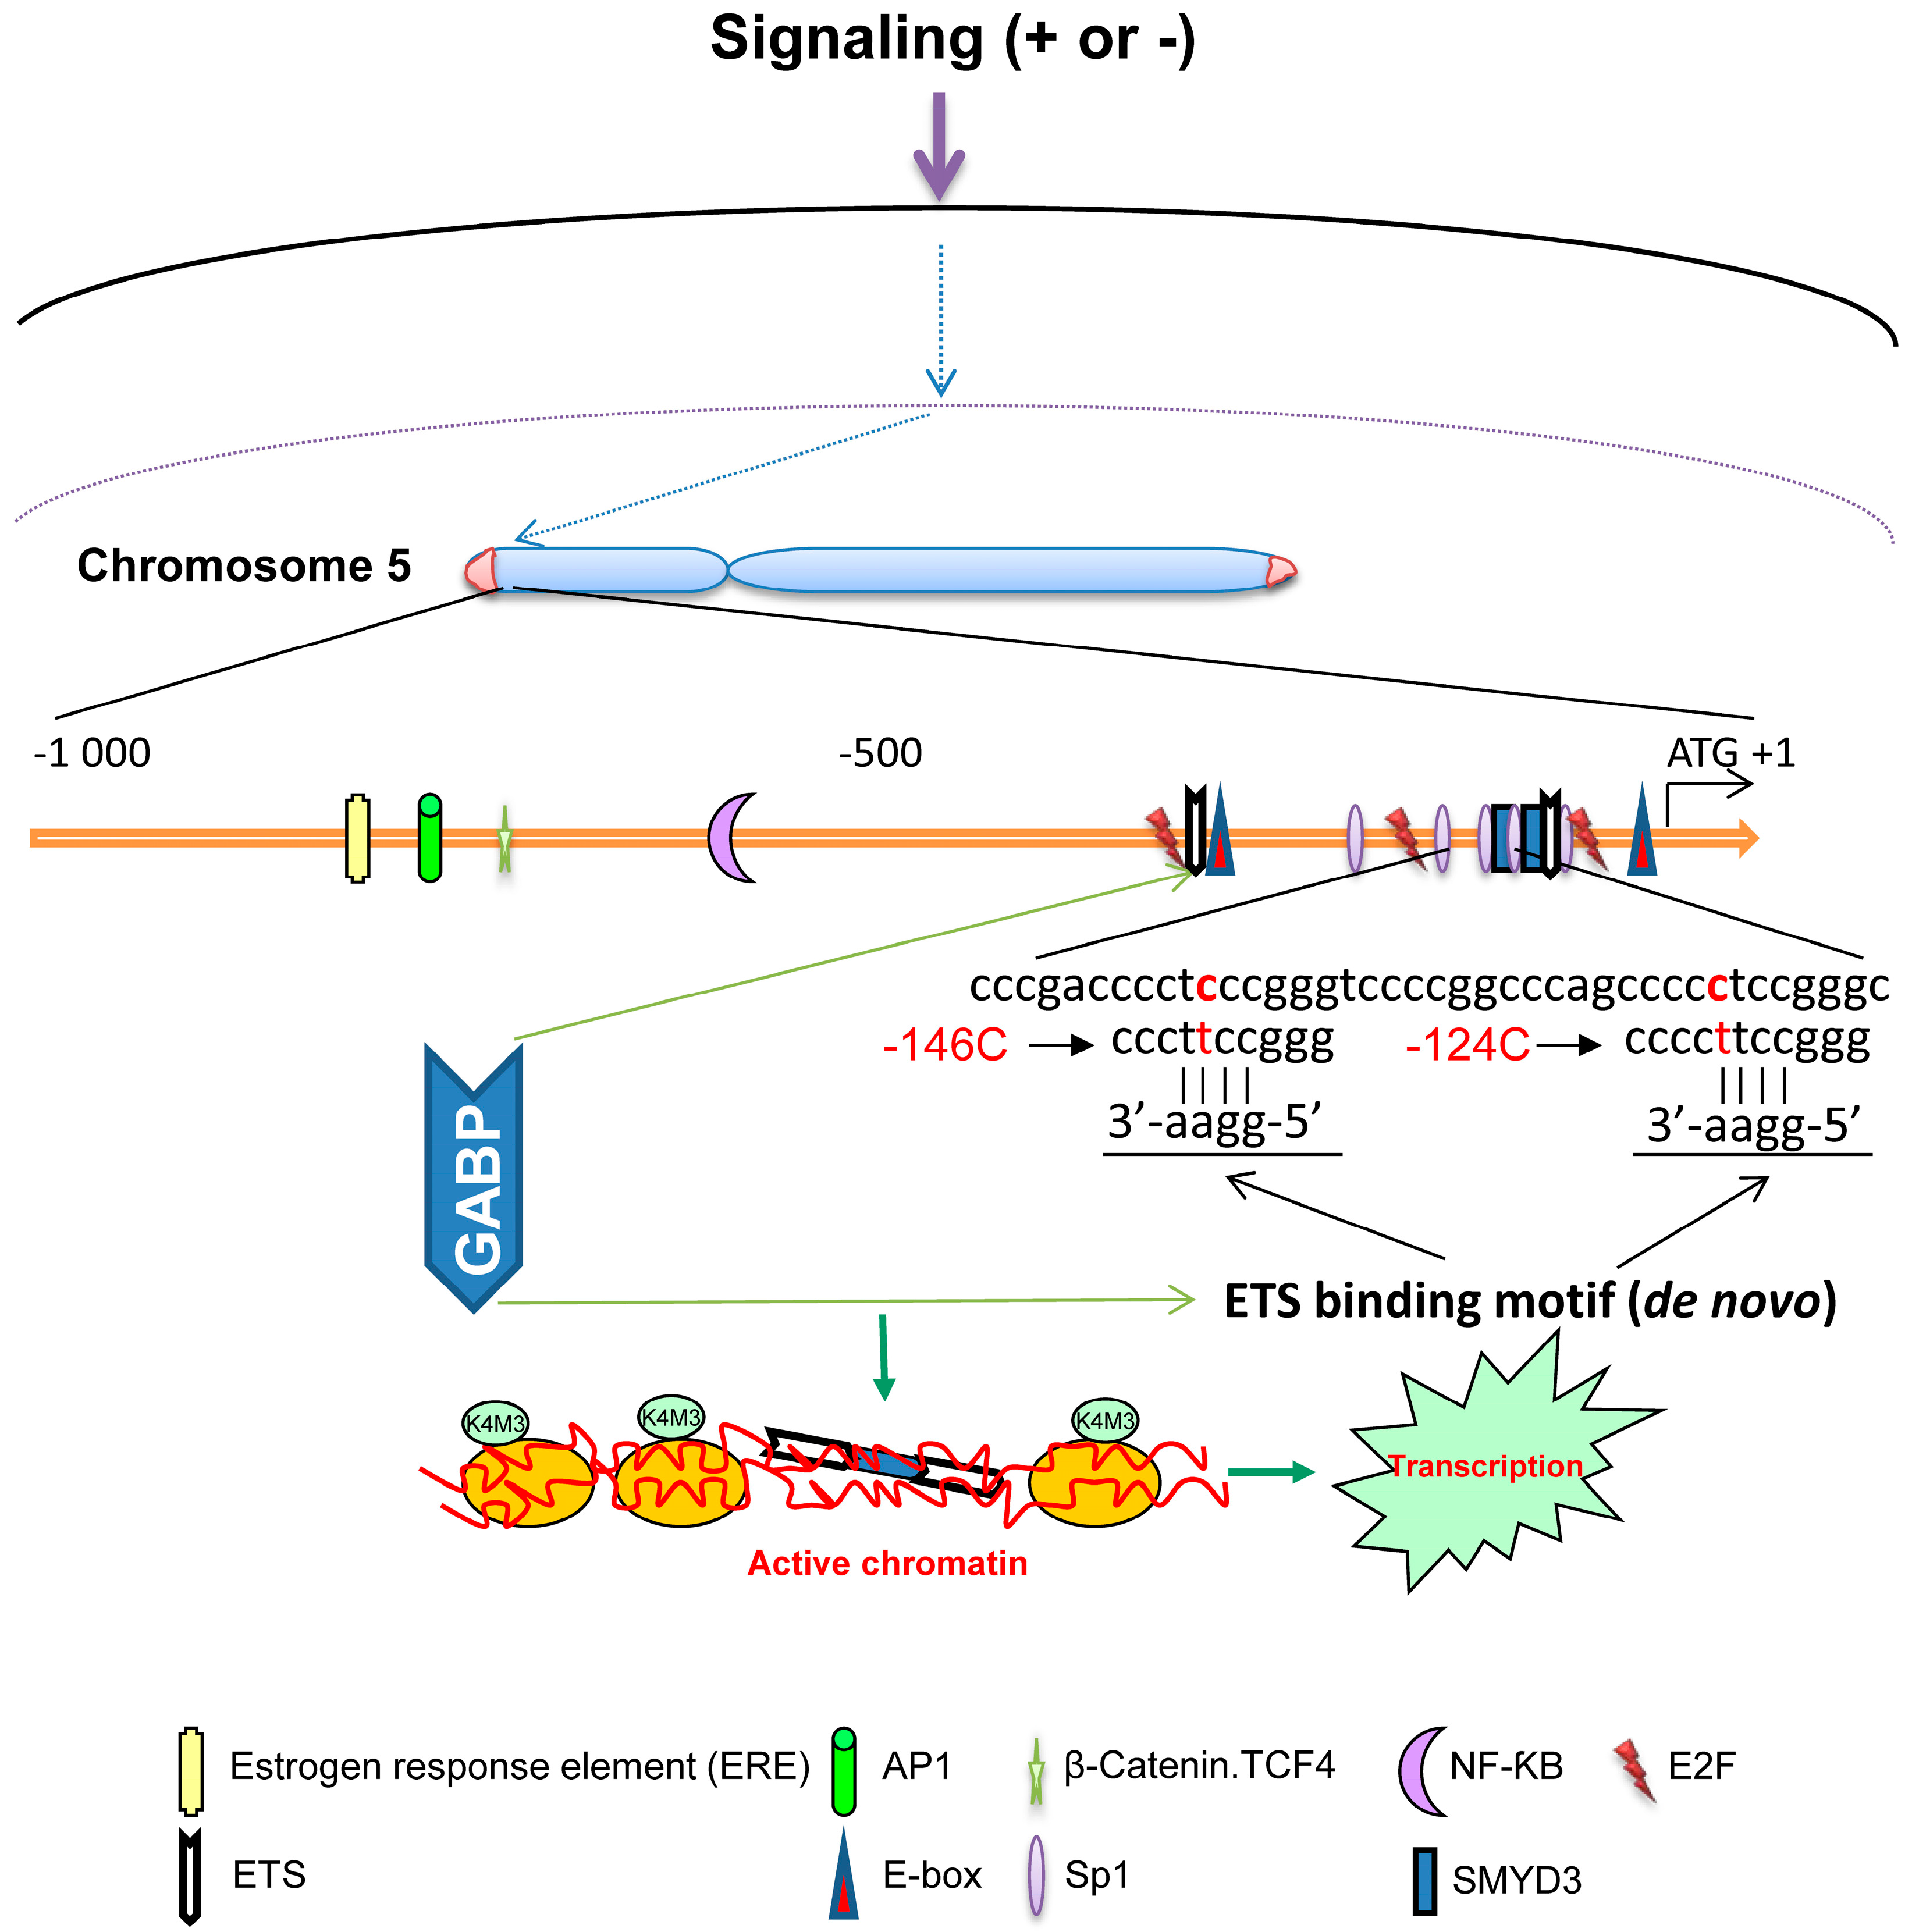 pdf mutation and cancer a model for human carcinogenesis 2